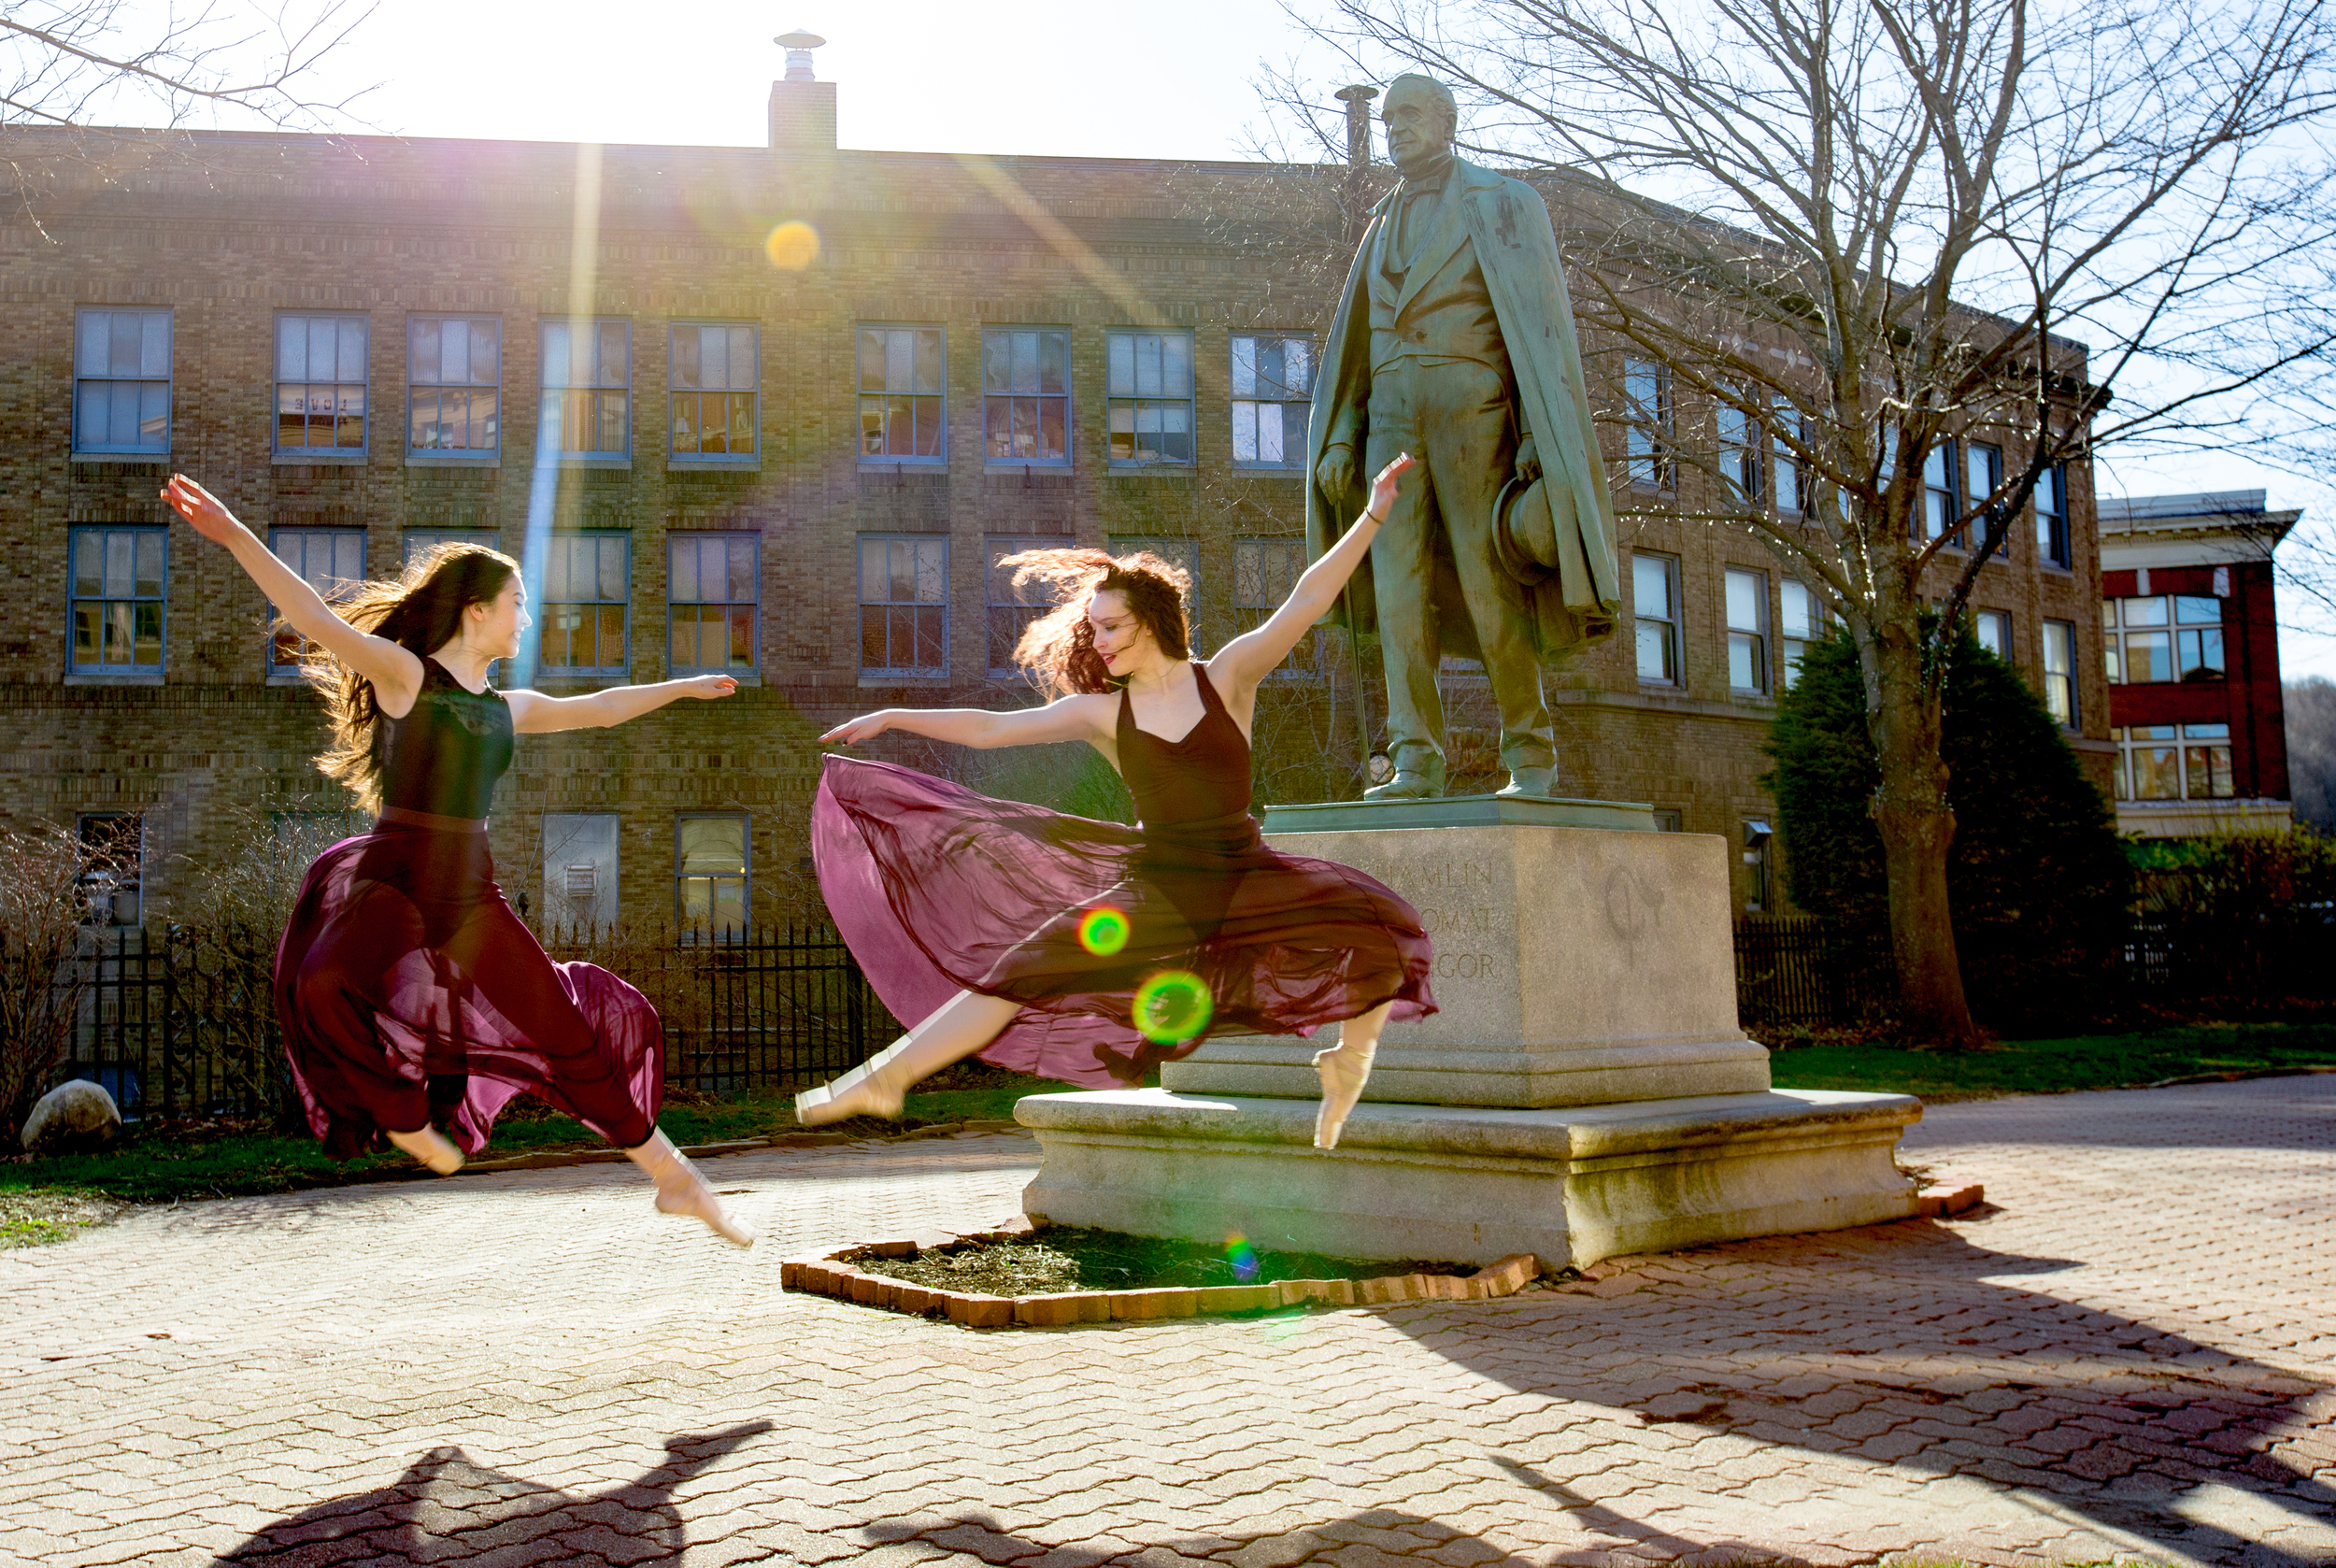 """BANGOR, MAINE -- 04/20/2016 -- Bangor Ballet students Kelsie Washington (right) and Catherine Ahola goof around after class on Wednesday in the Norumbega Parkway in Bangor. """"It's just such a nice day,"""" Washington said. """"Just feel the wind."""" (Micky Bedell   BDN)"""